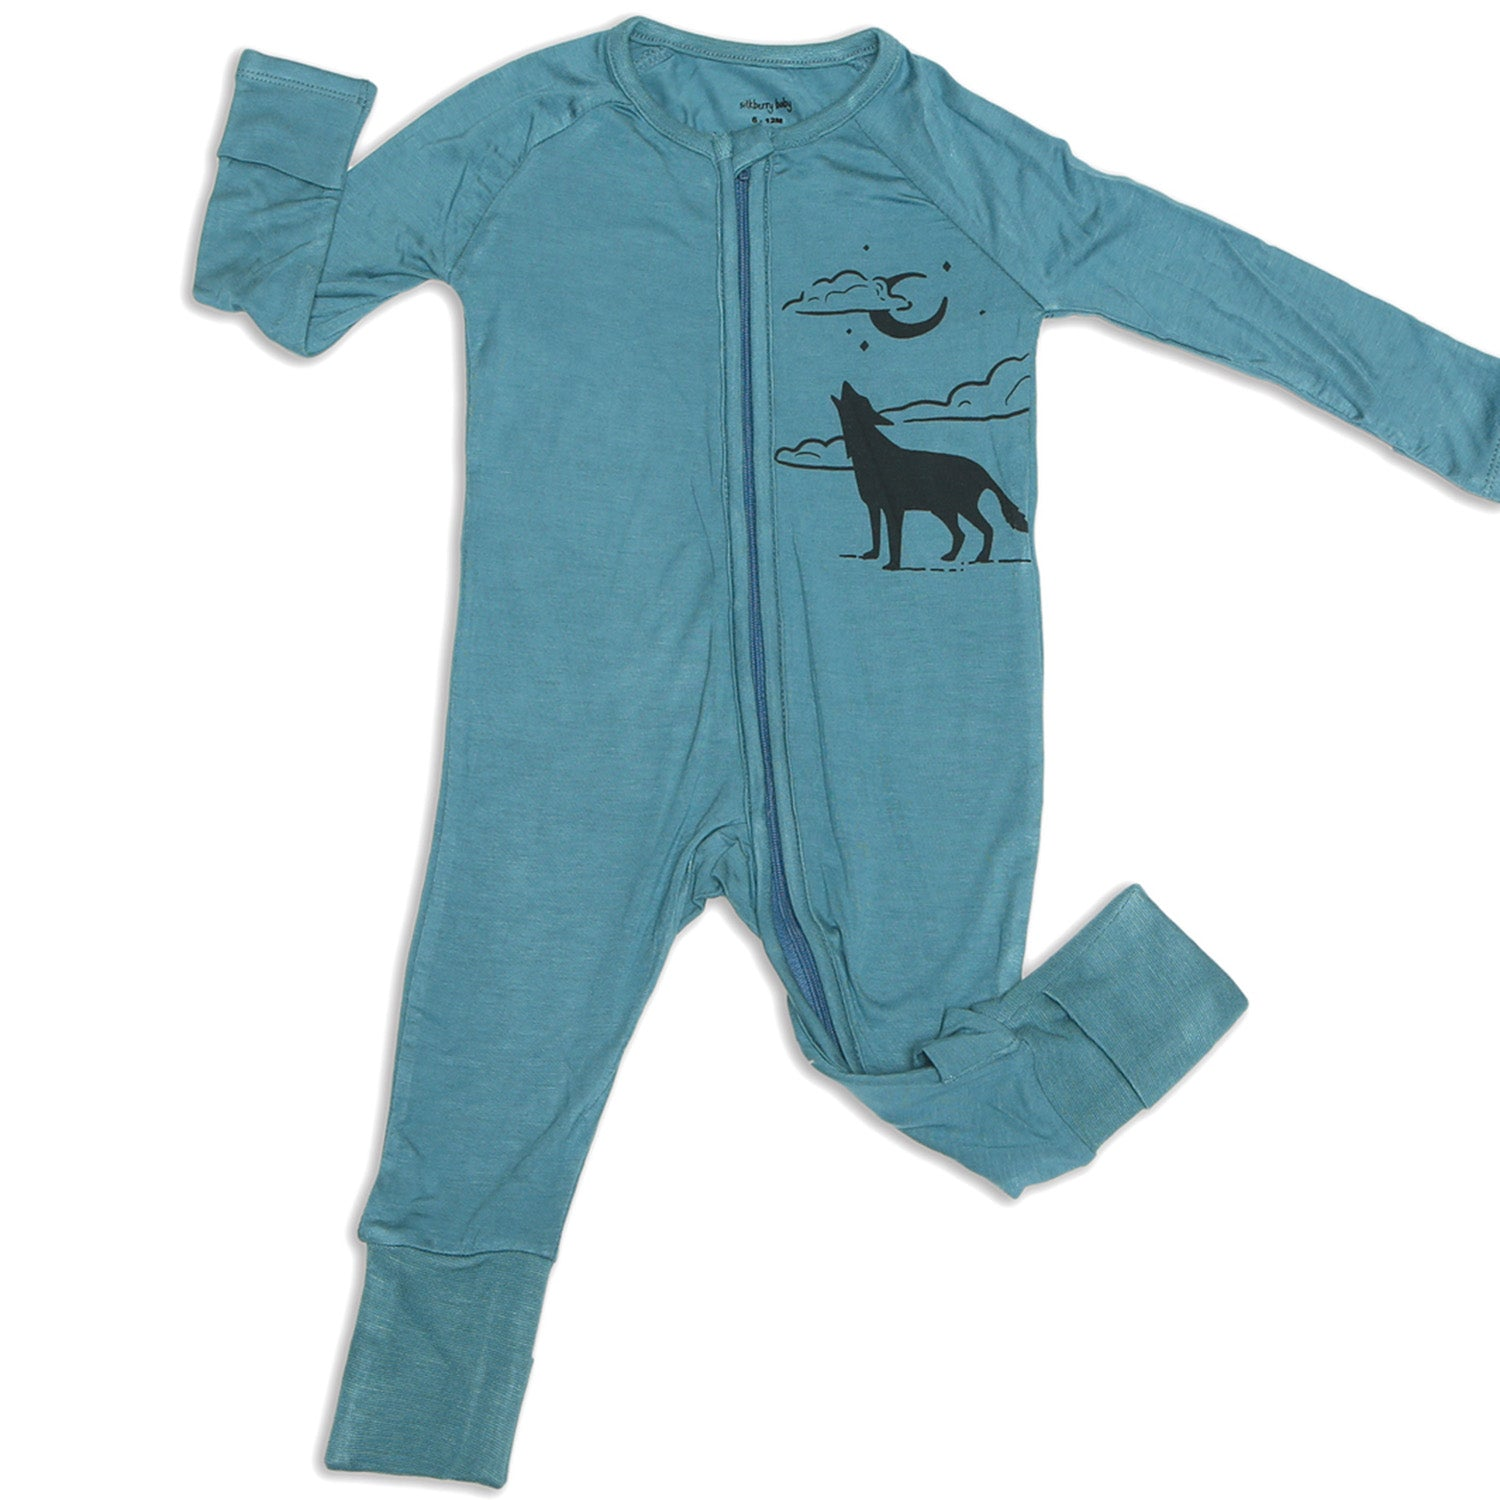 Silkberry Baby Bamboo Long Sleeve Romper w/ Two-way zipper - Blue Forest